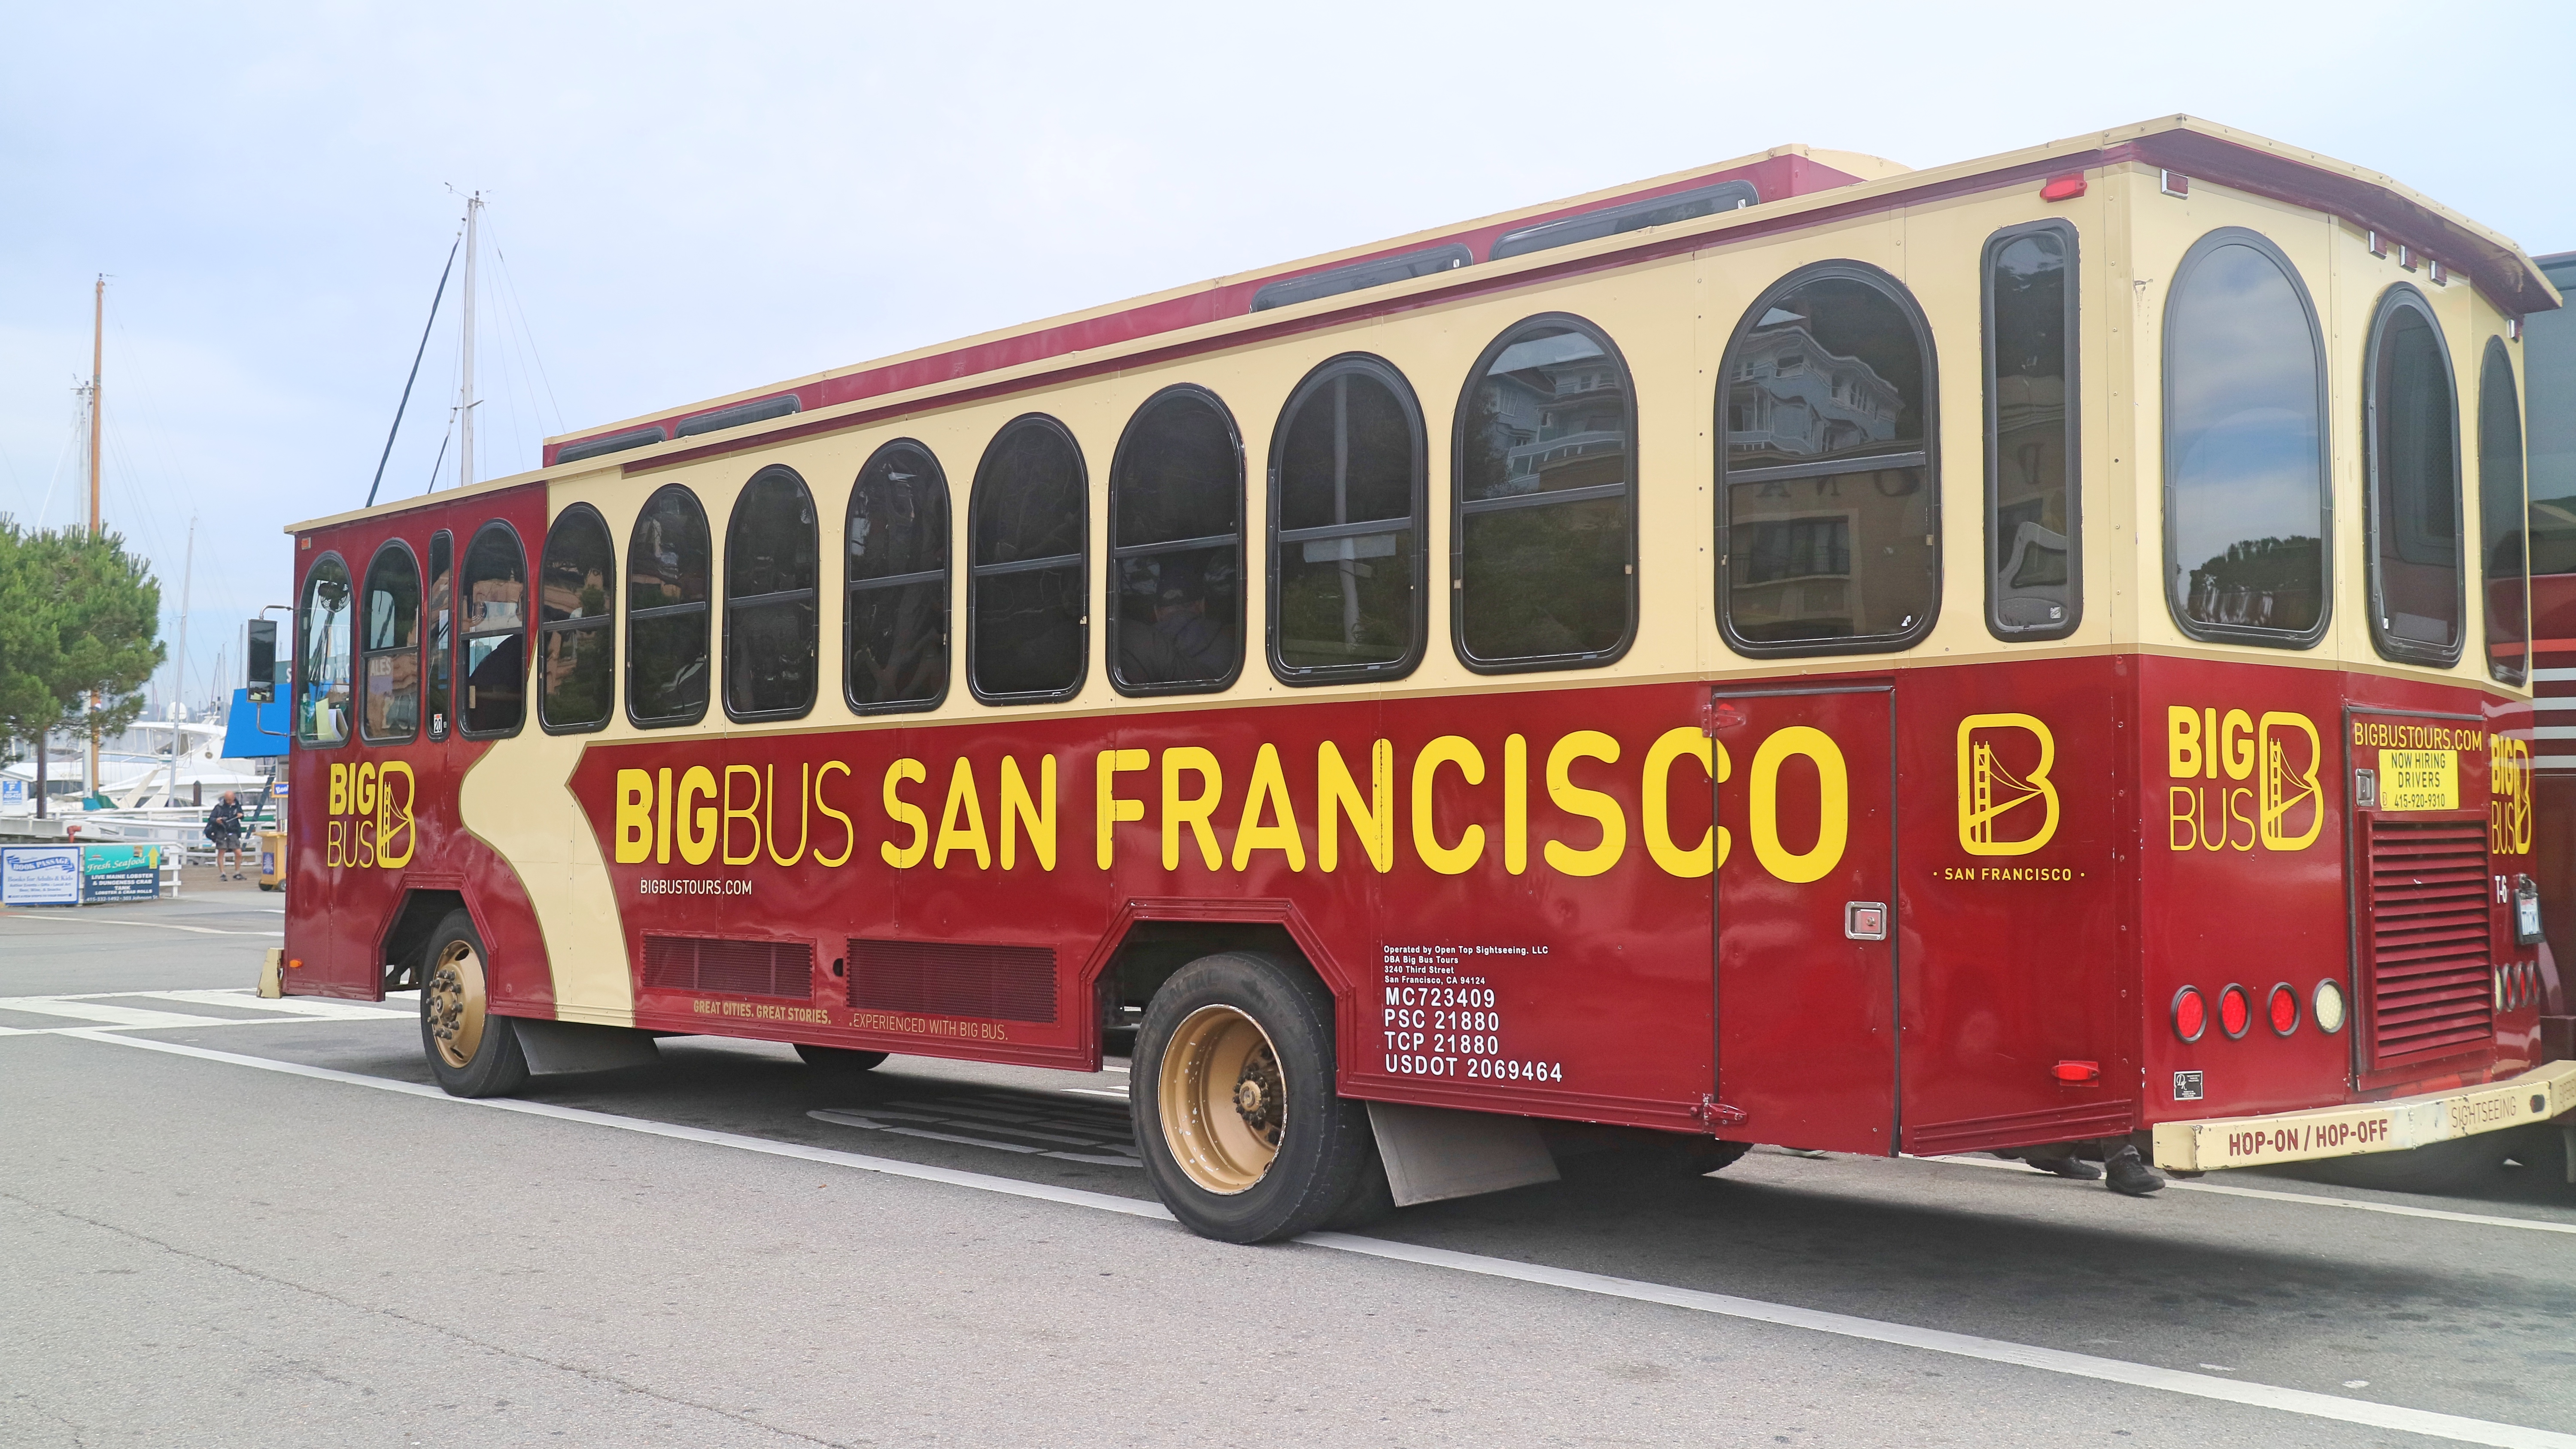 Usa Exploring San Francisco The City By The Bay With Big Bus Tours Eat Sleep Love Travel